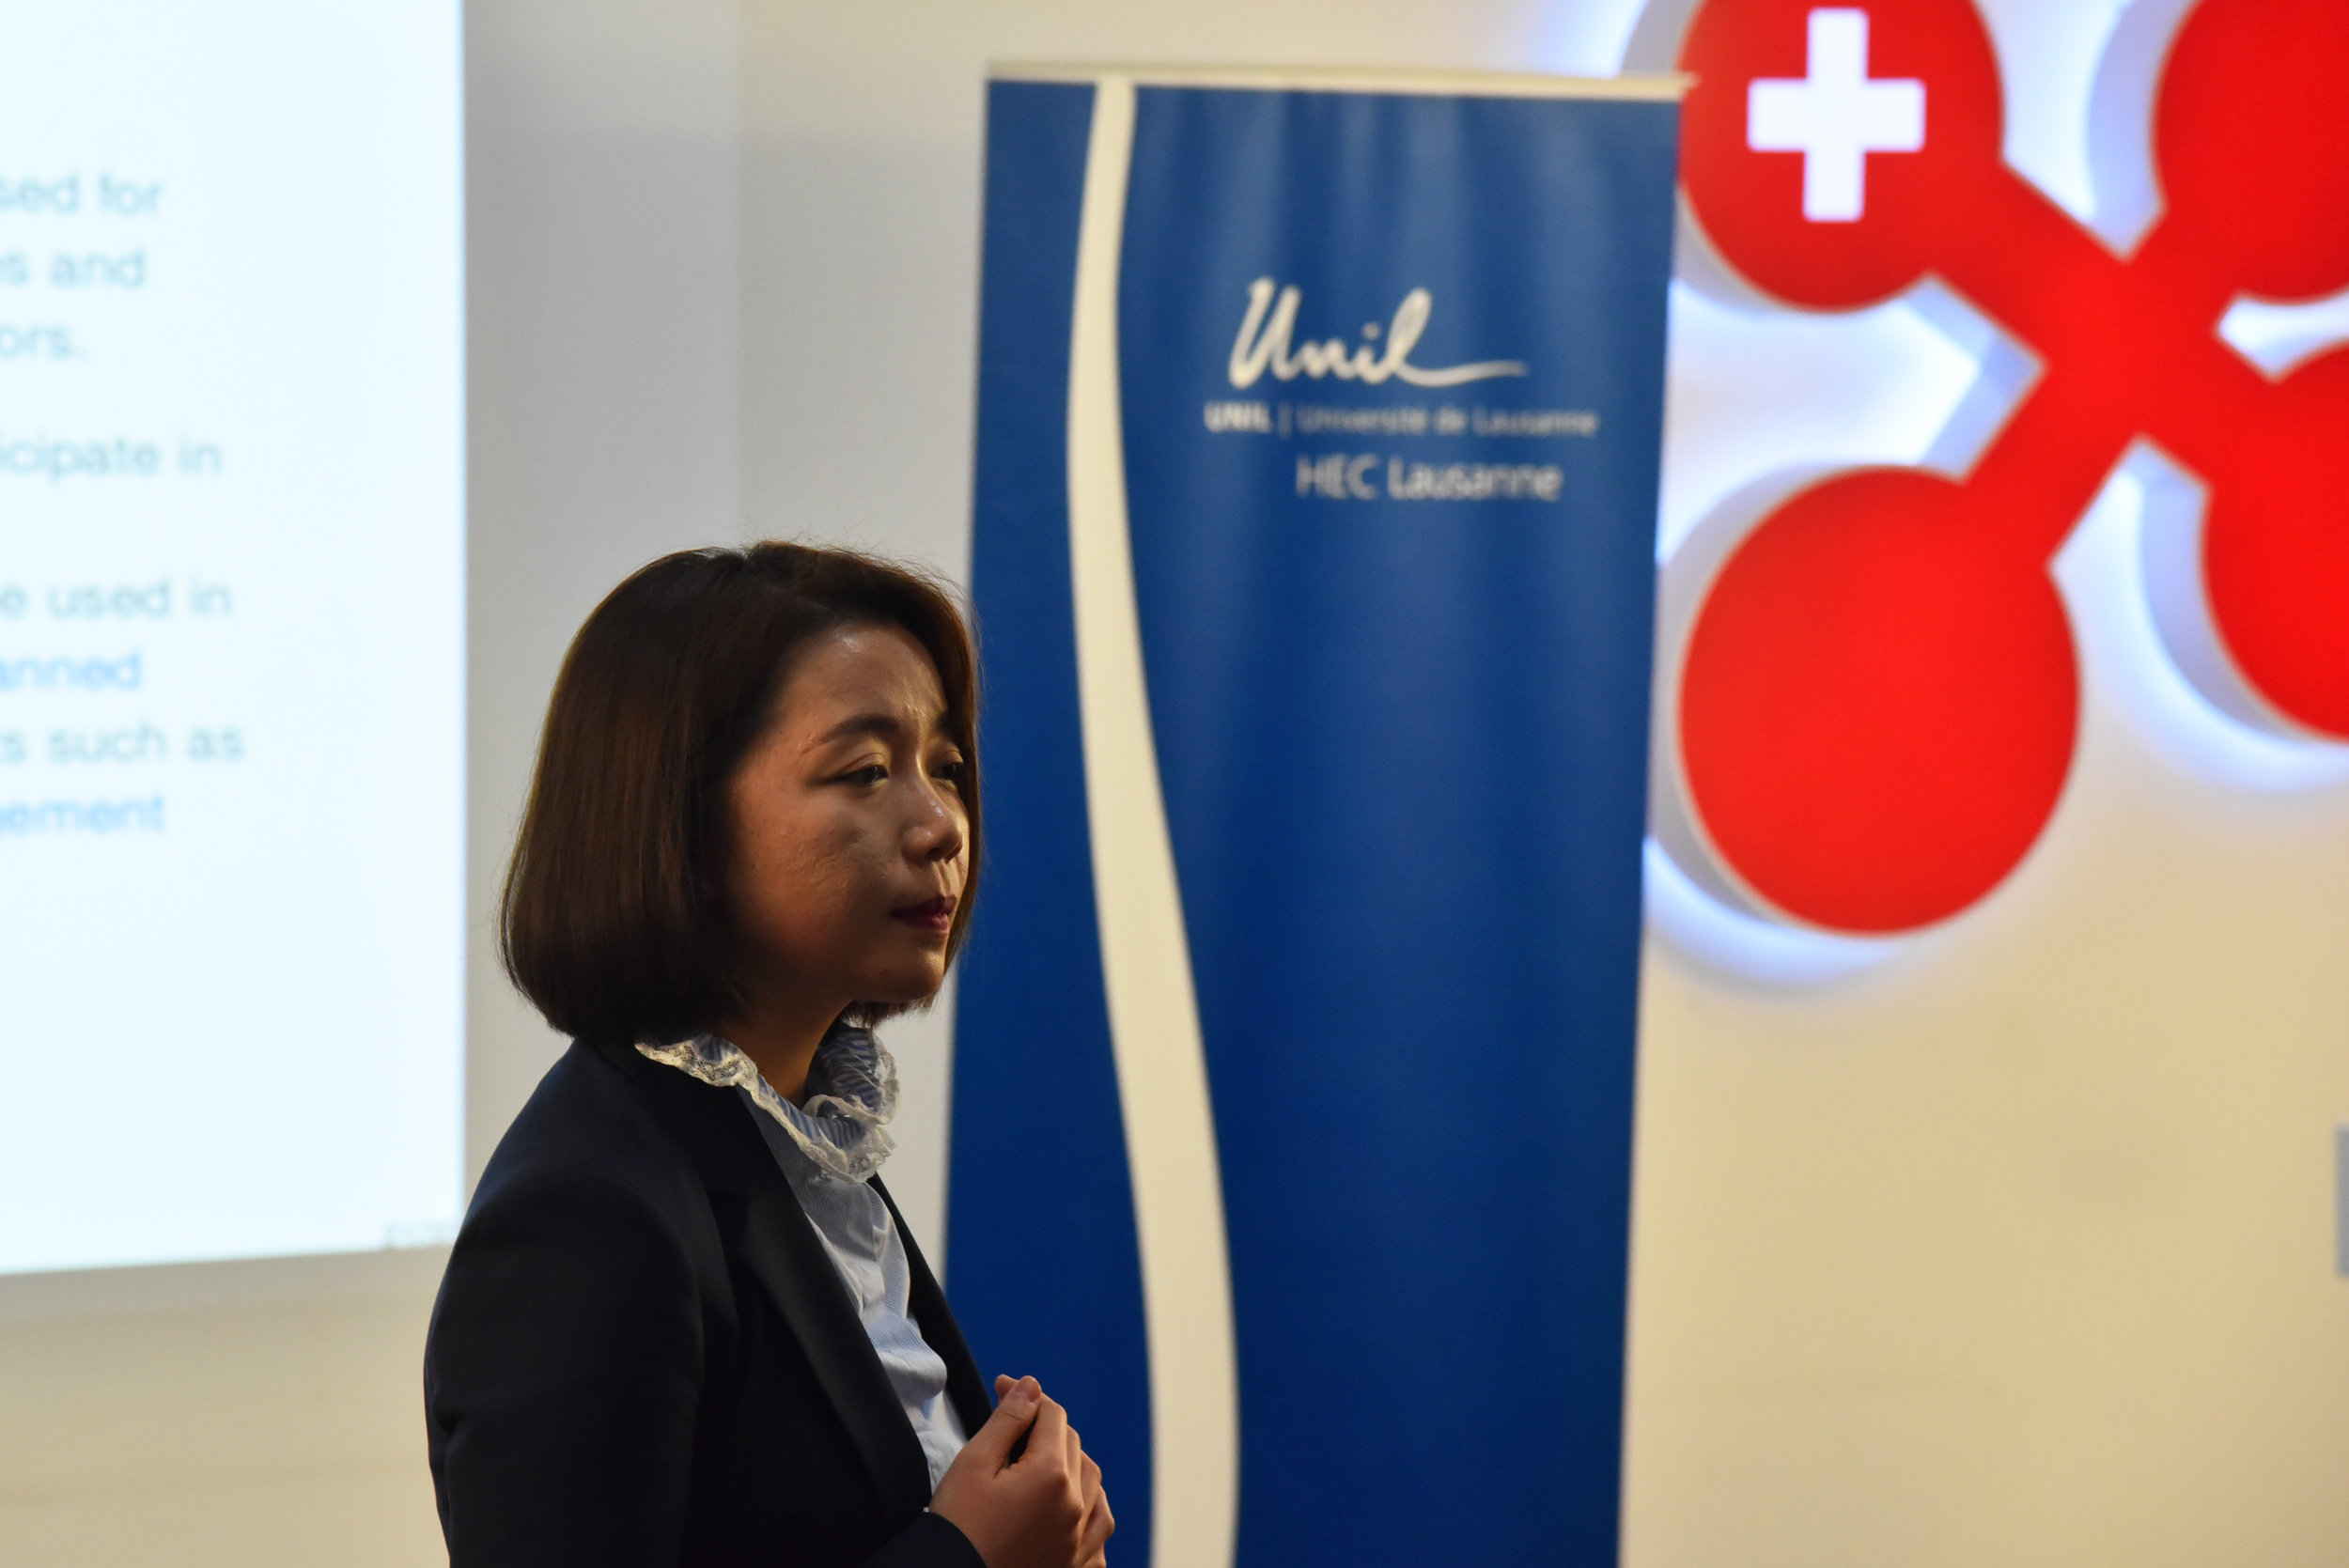 Prof. Ying Liu illustrated the differences between shadow banking and traditional banking.